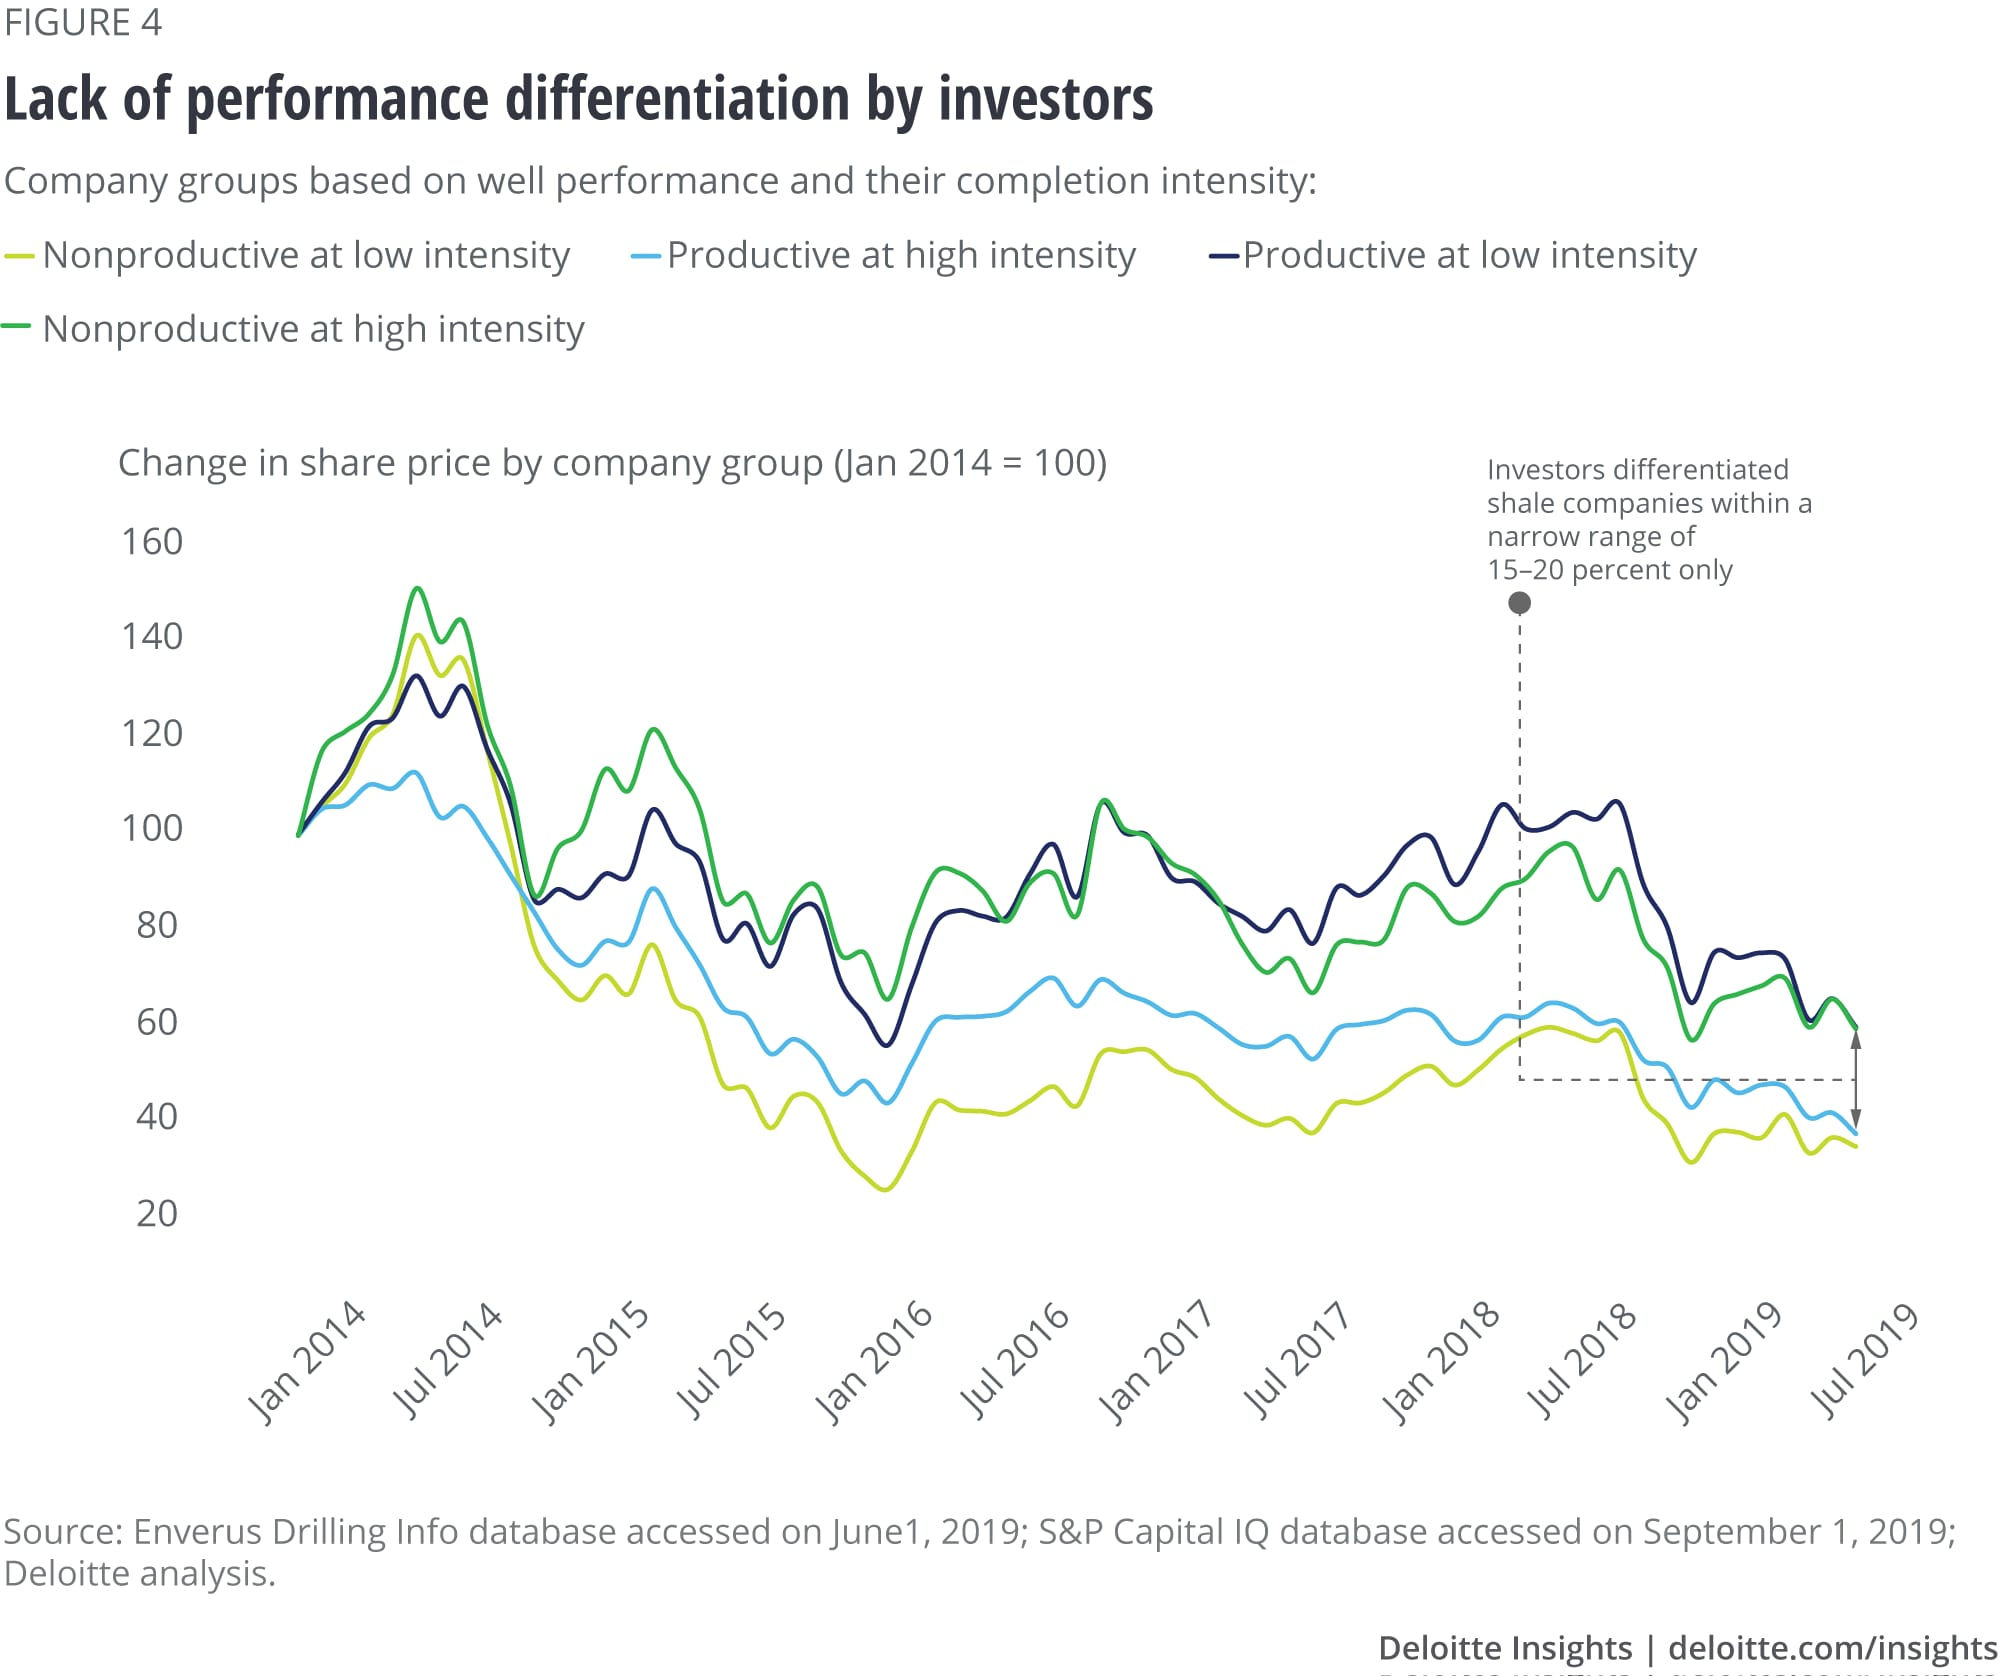 Lack of performance differentiation by investors